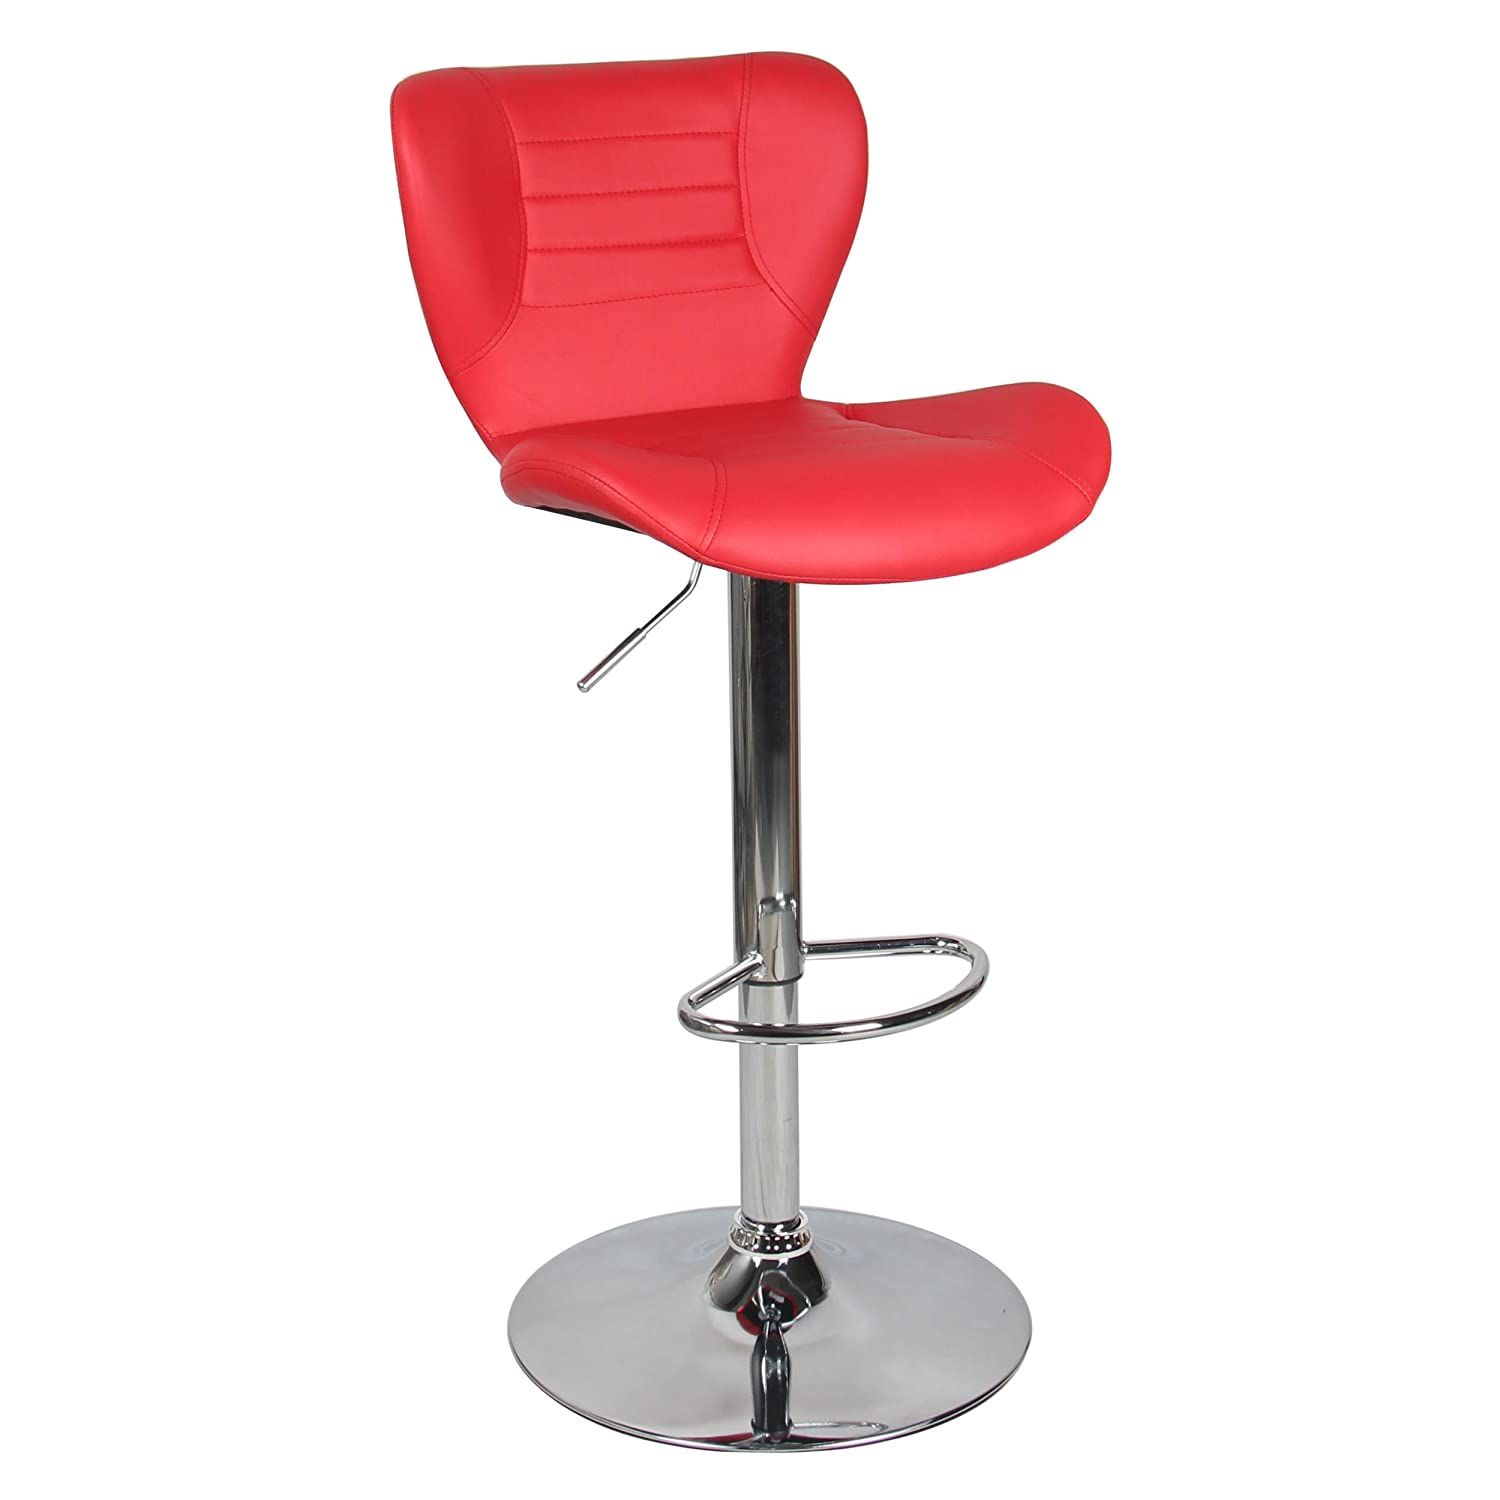 Moustache High Back Butterfly Swivel Height Adjustable PU Leather Pub Bar Stool Chair, with Backrest & Footrest - Black MOFC-D6005-BK